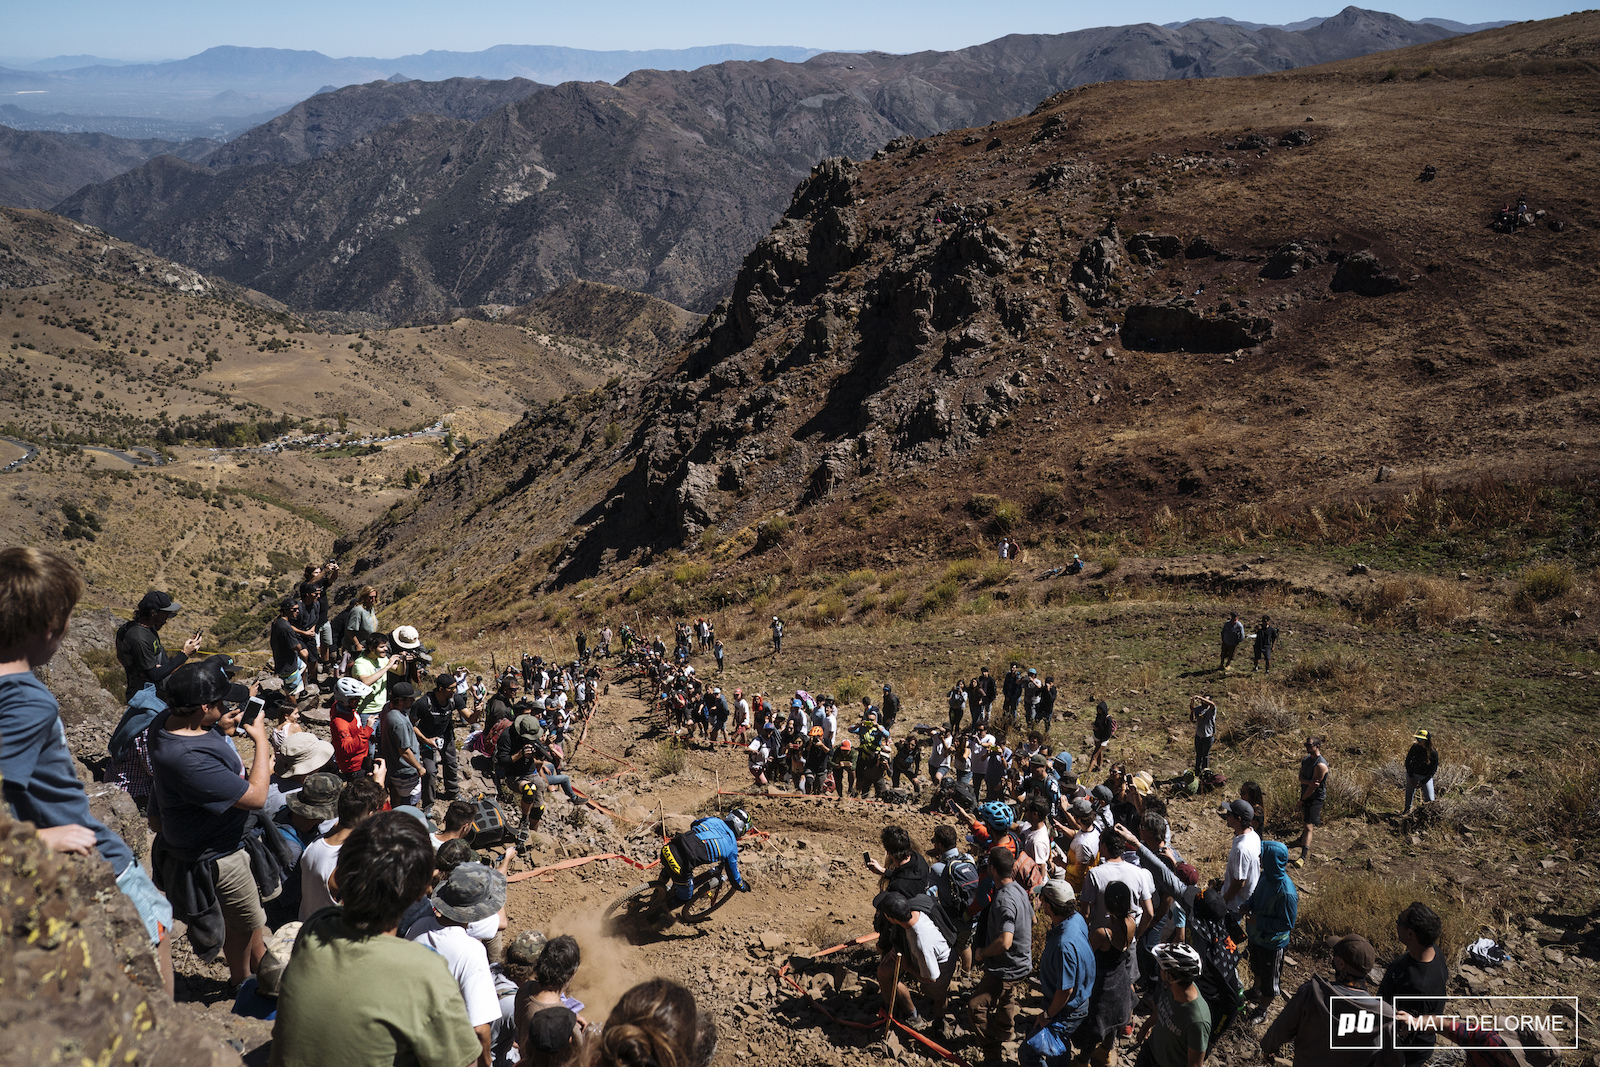 Big views big crowds and Sam Hill smashing loose corners. Could there be anything finer.